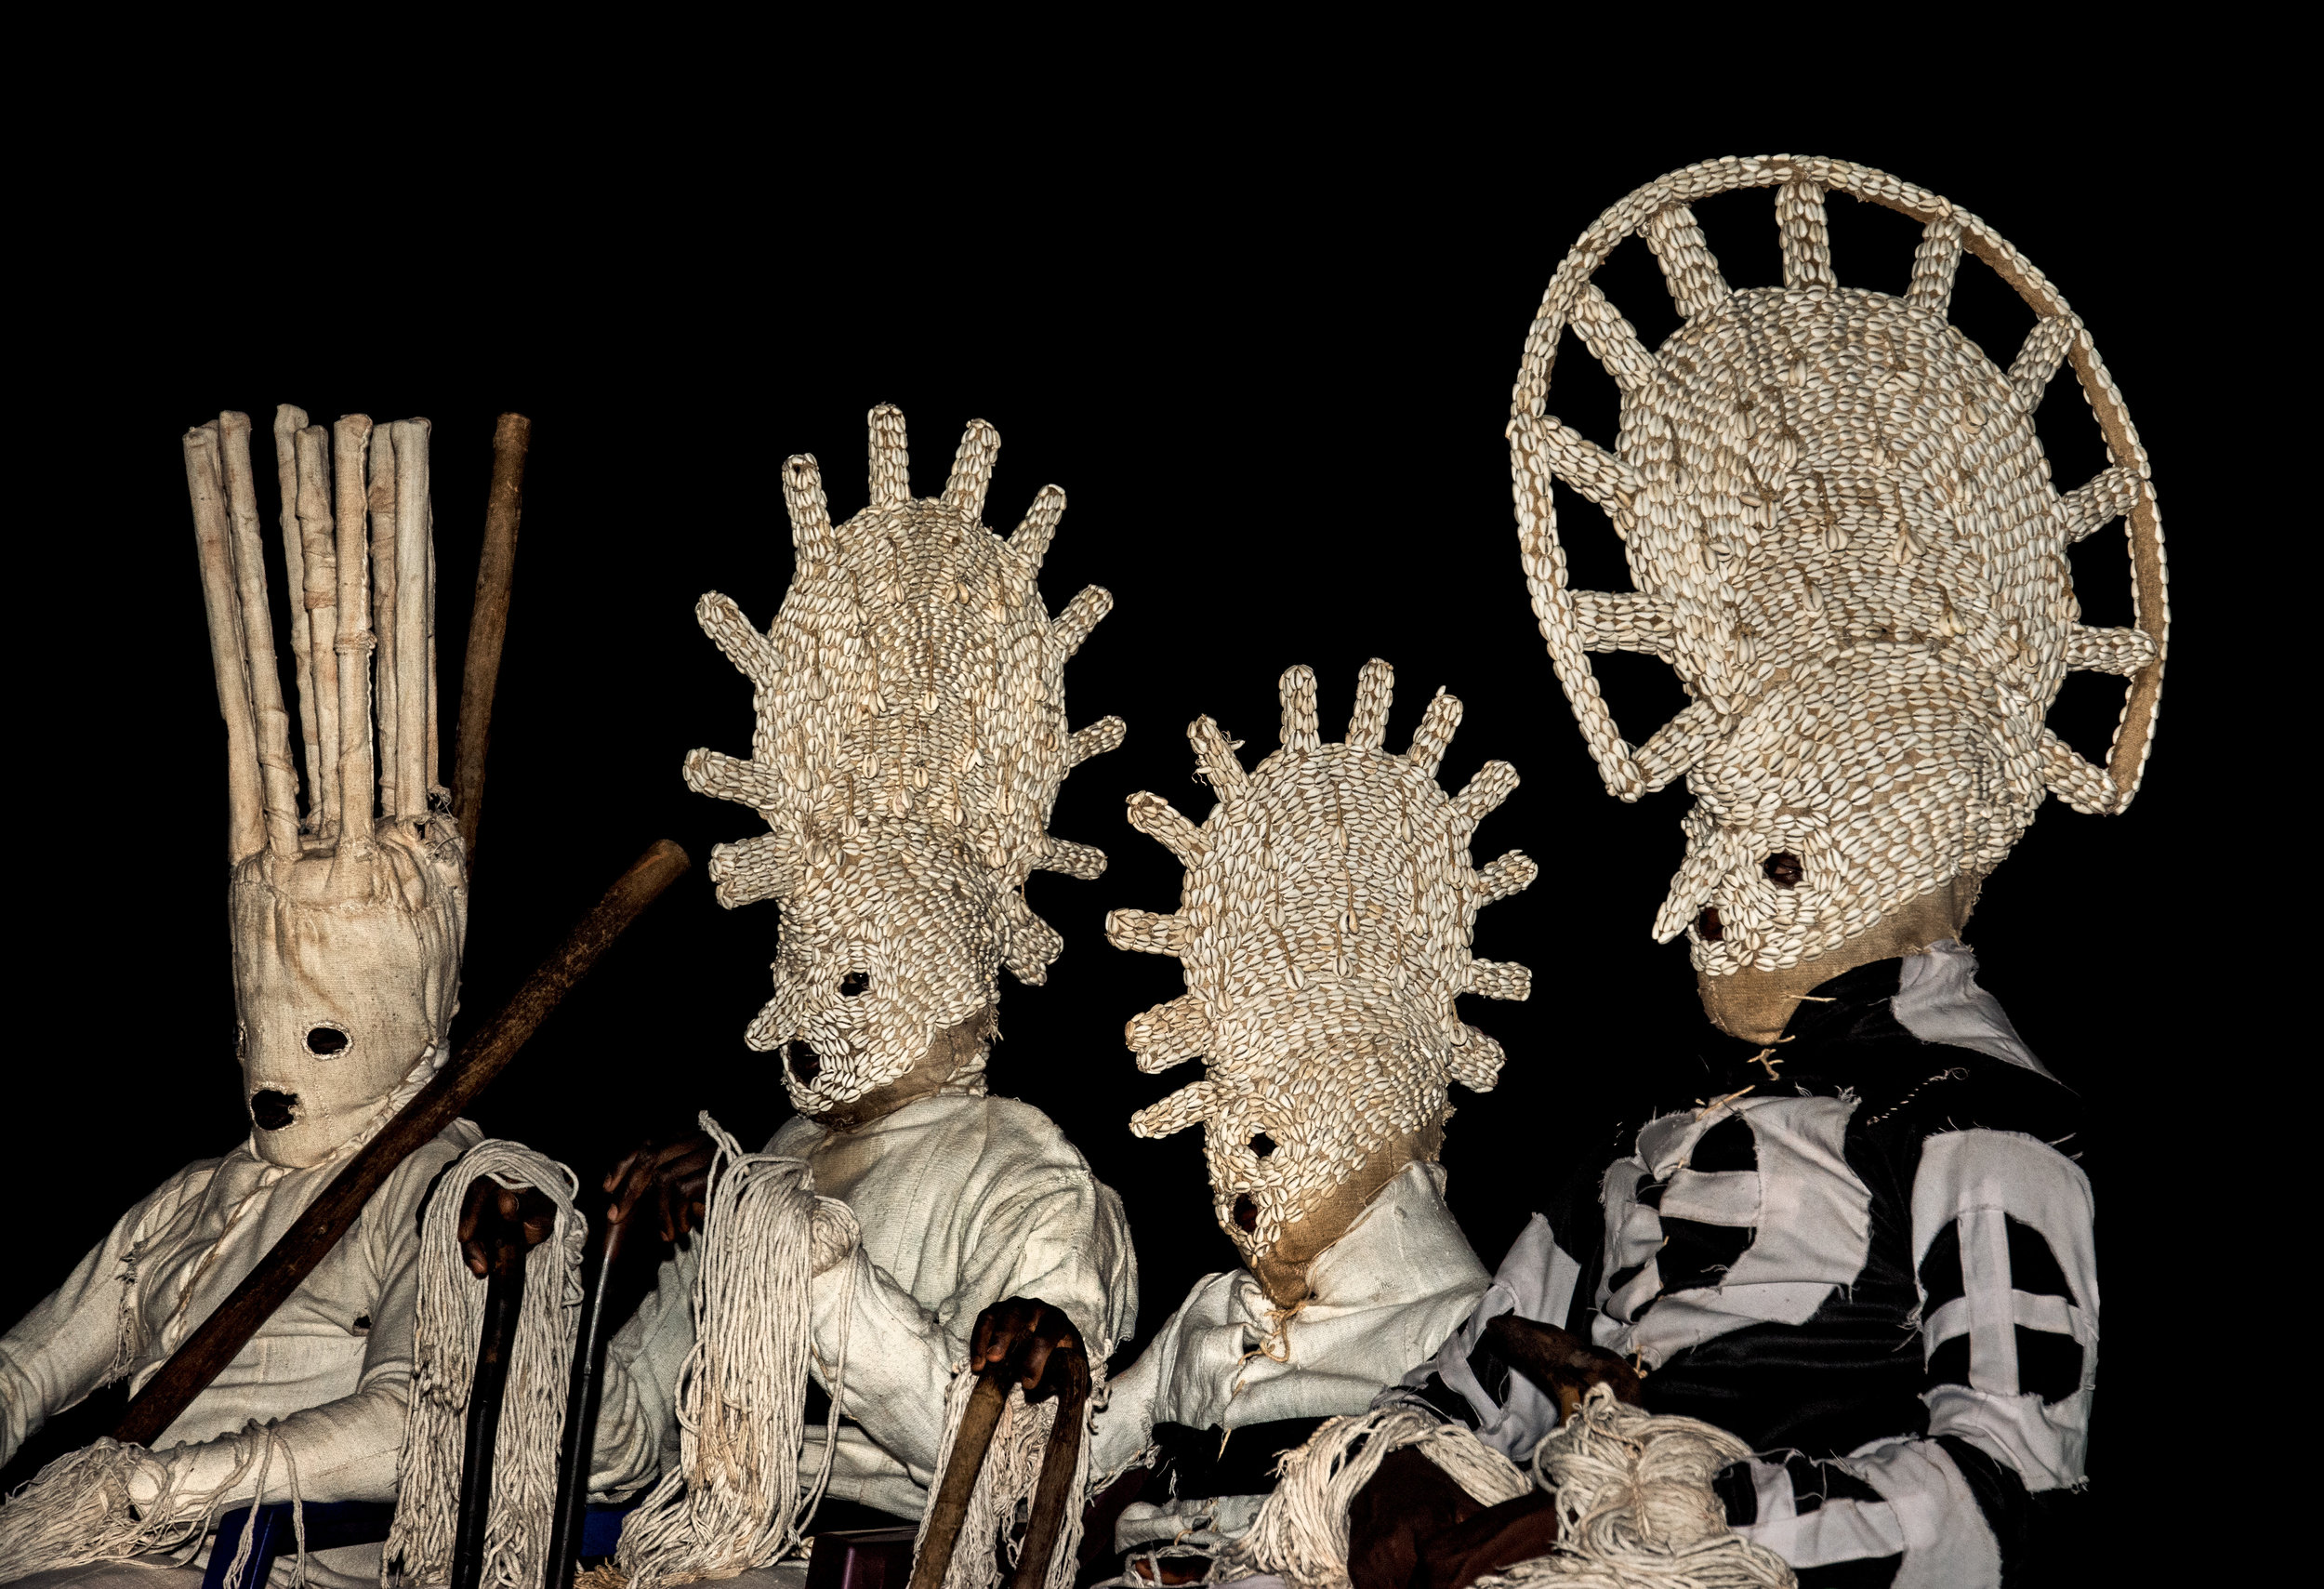 : Lunar masks appear in painted textile bodysuits, some with rope fringed headdresses and others with elaborate cowrie-shell-studded headpieces. The cowrie shell is a powerful symbol of female fertility. These masks come out in April to thank the gods for the fertility of young women. © African Twilight: The Vanishing Cultures and Ceremonies of the African Continent by Carol Beckwith and Angela Fisher, Rizzoli, 2018.